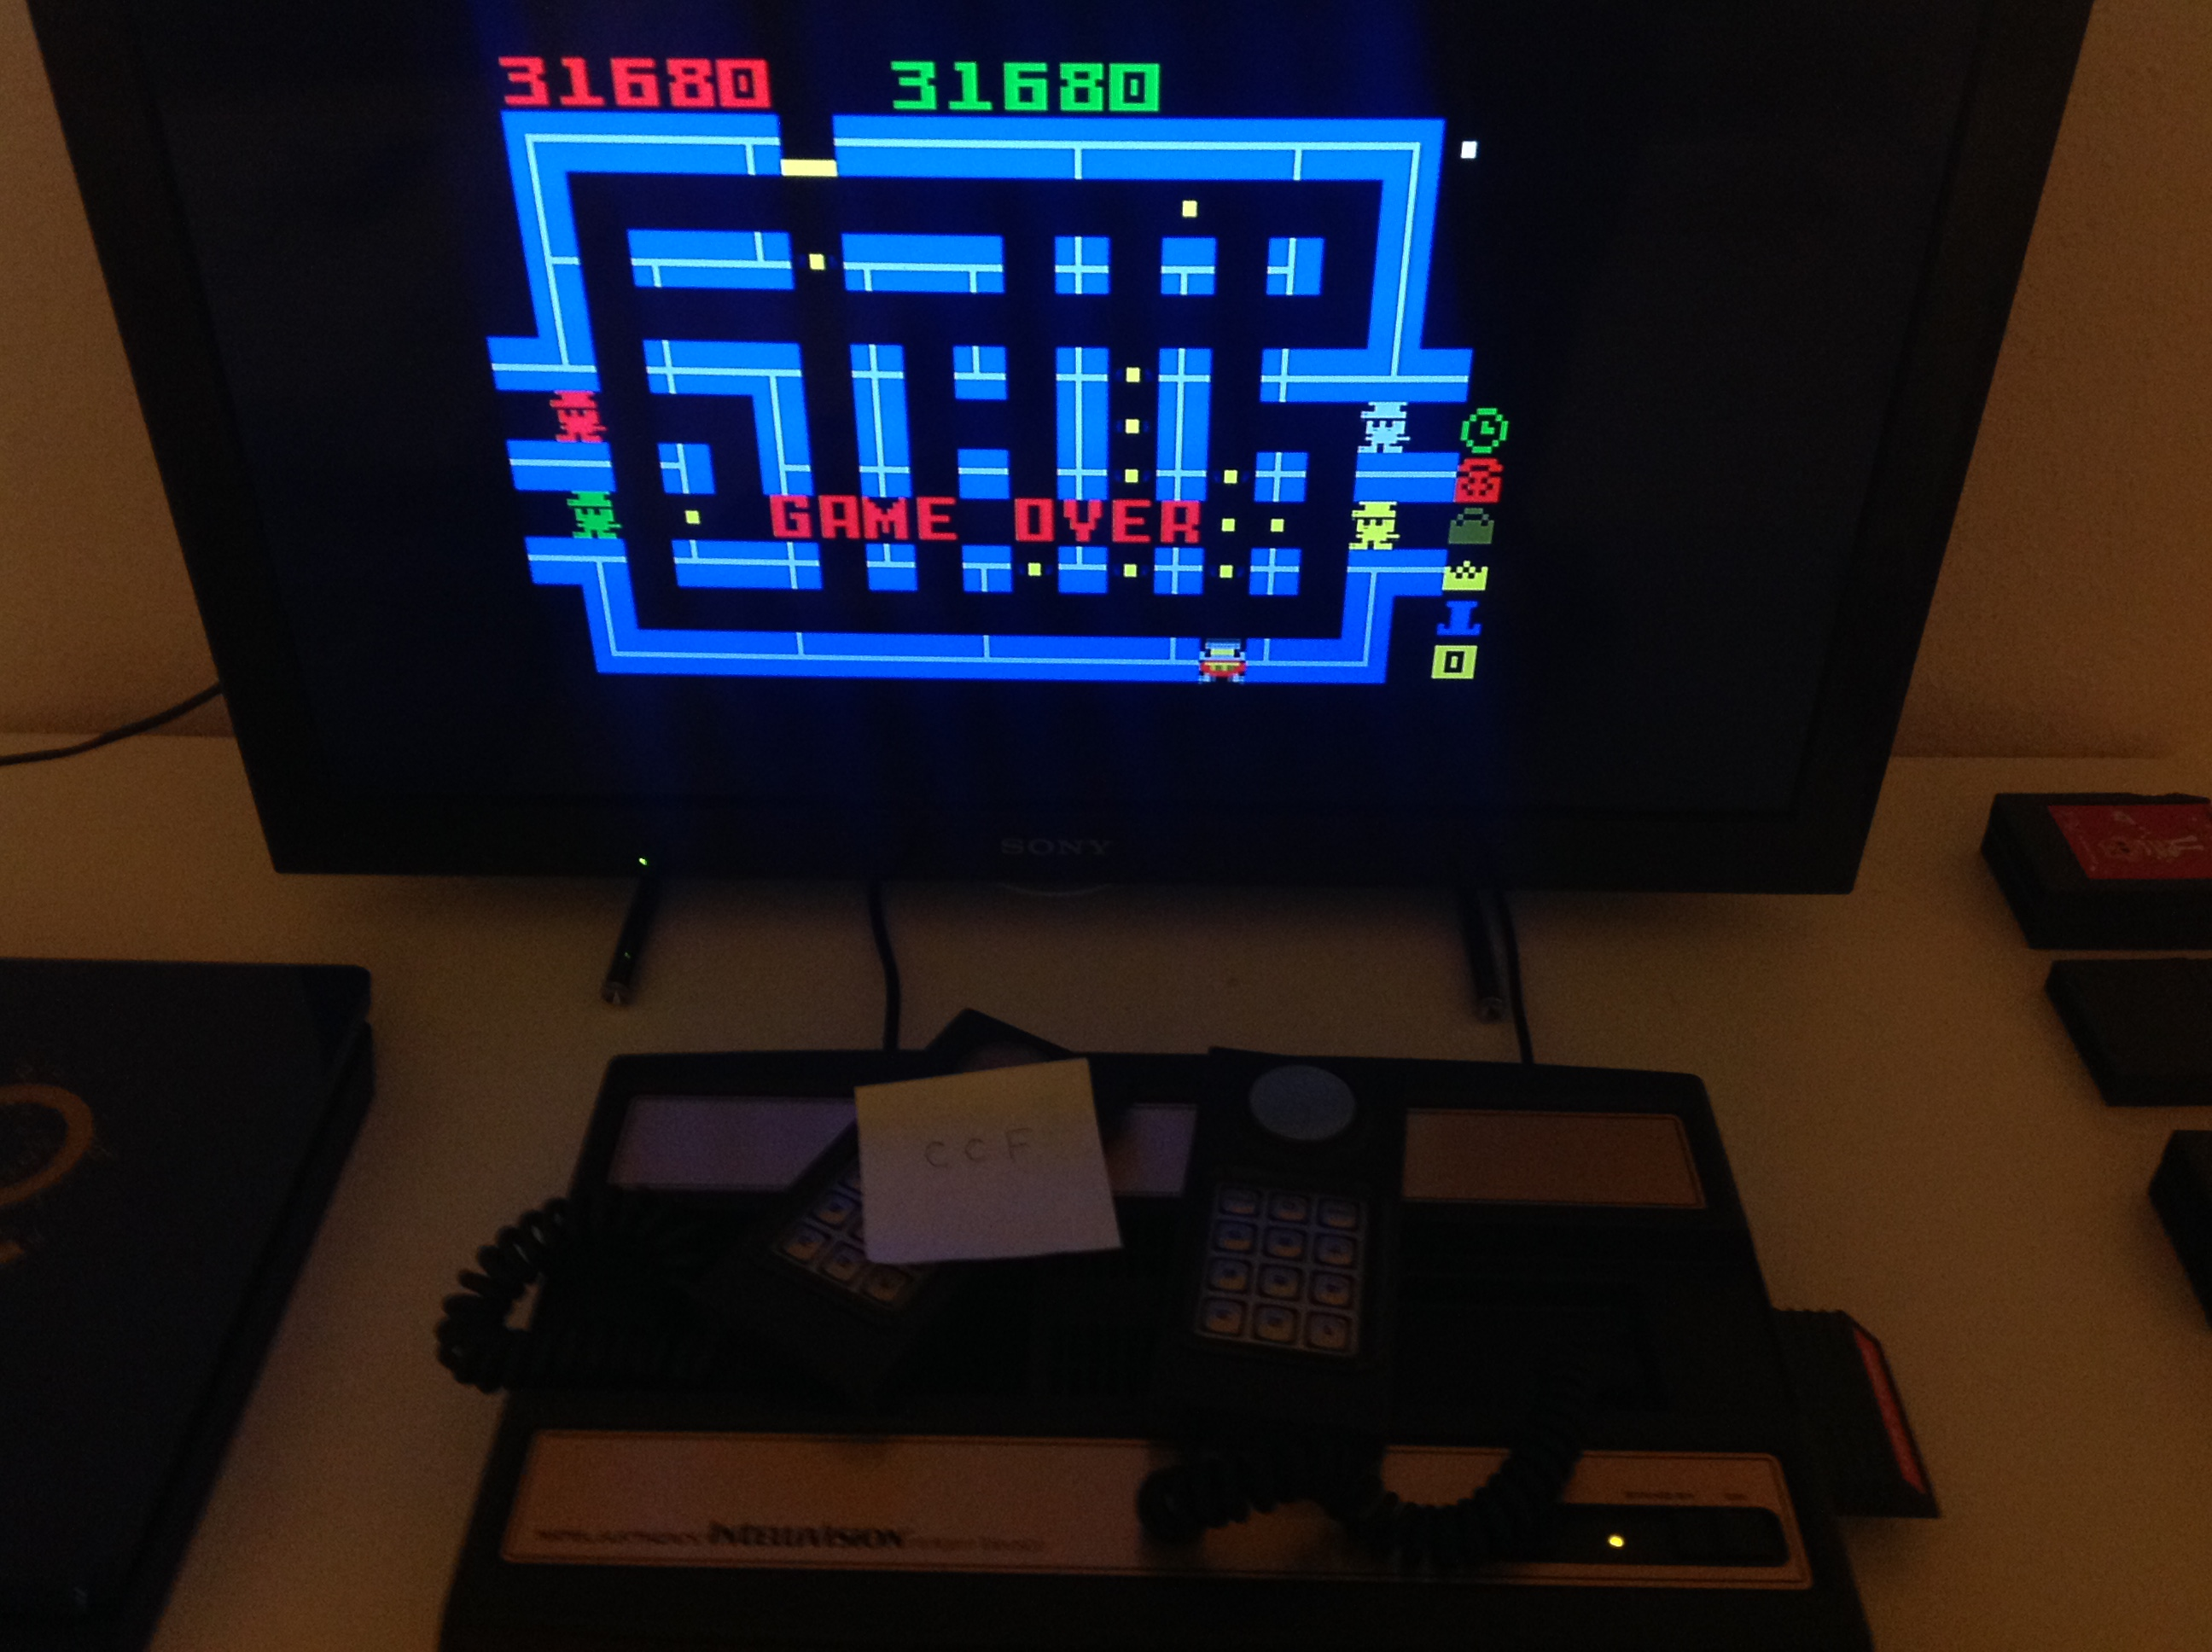 CoCoForest: Lock N Chase: Skill Disc (Intellivision) 31,680 points on 2018-08-13 13:20:38